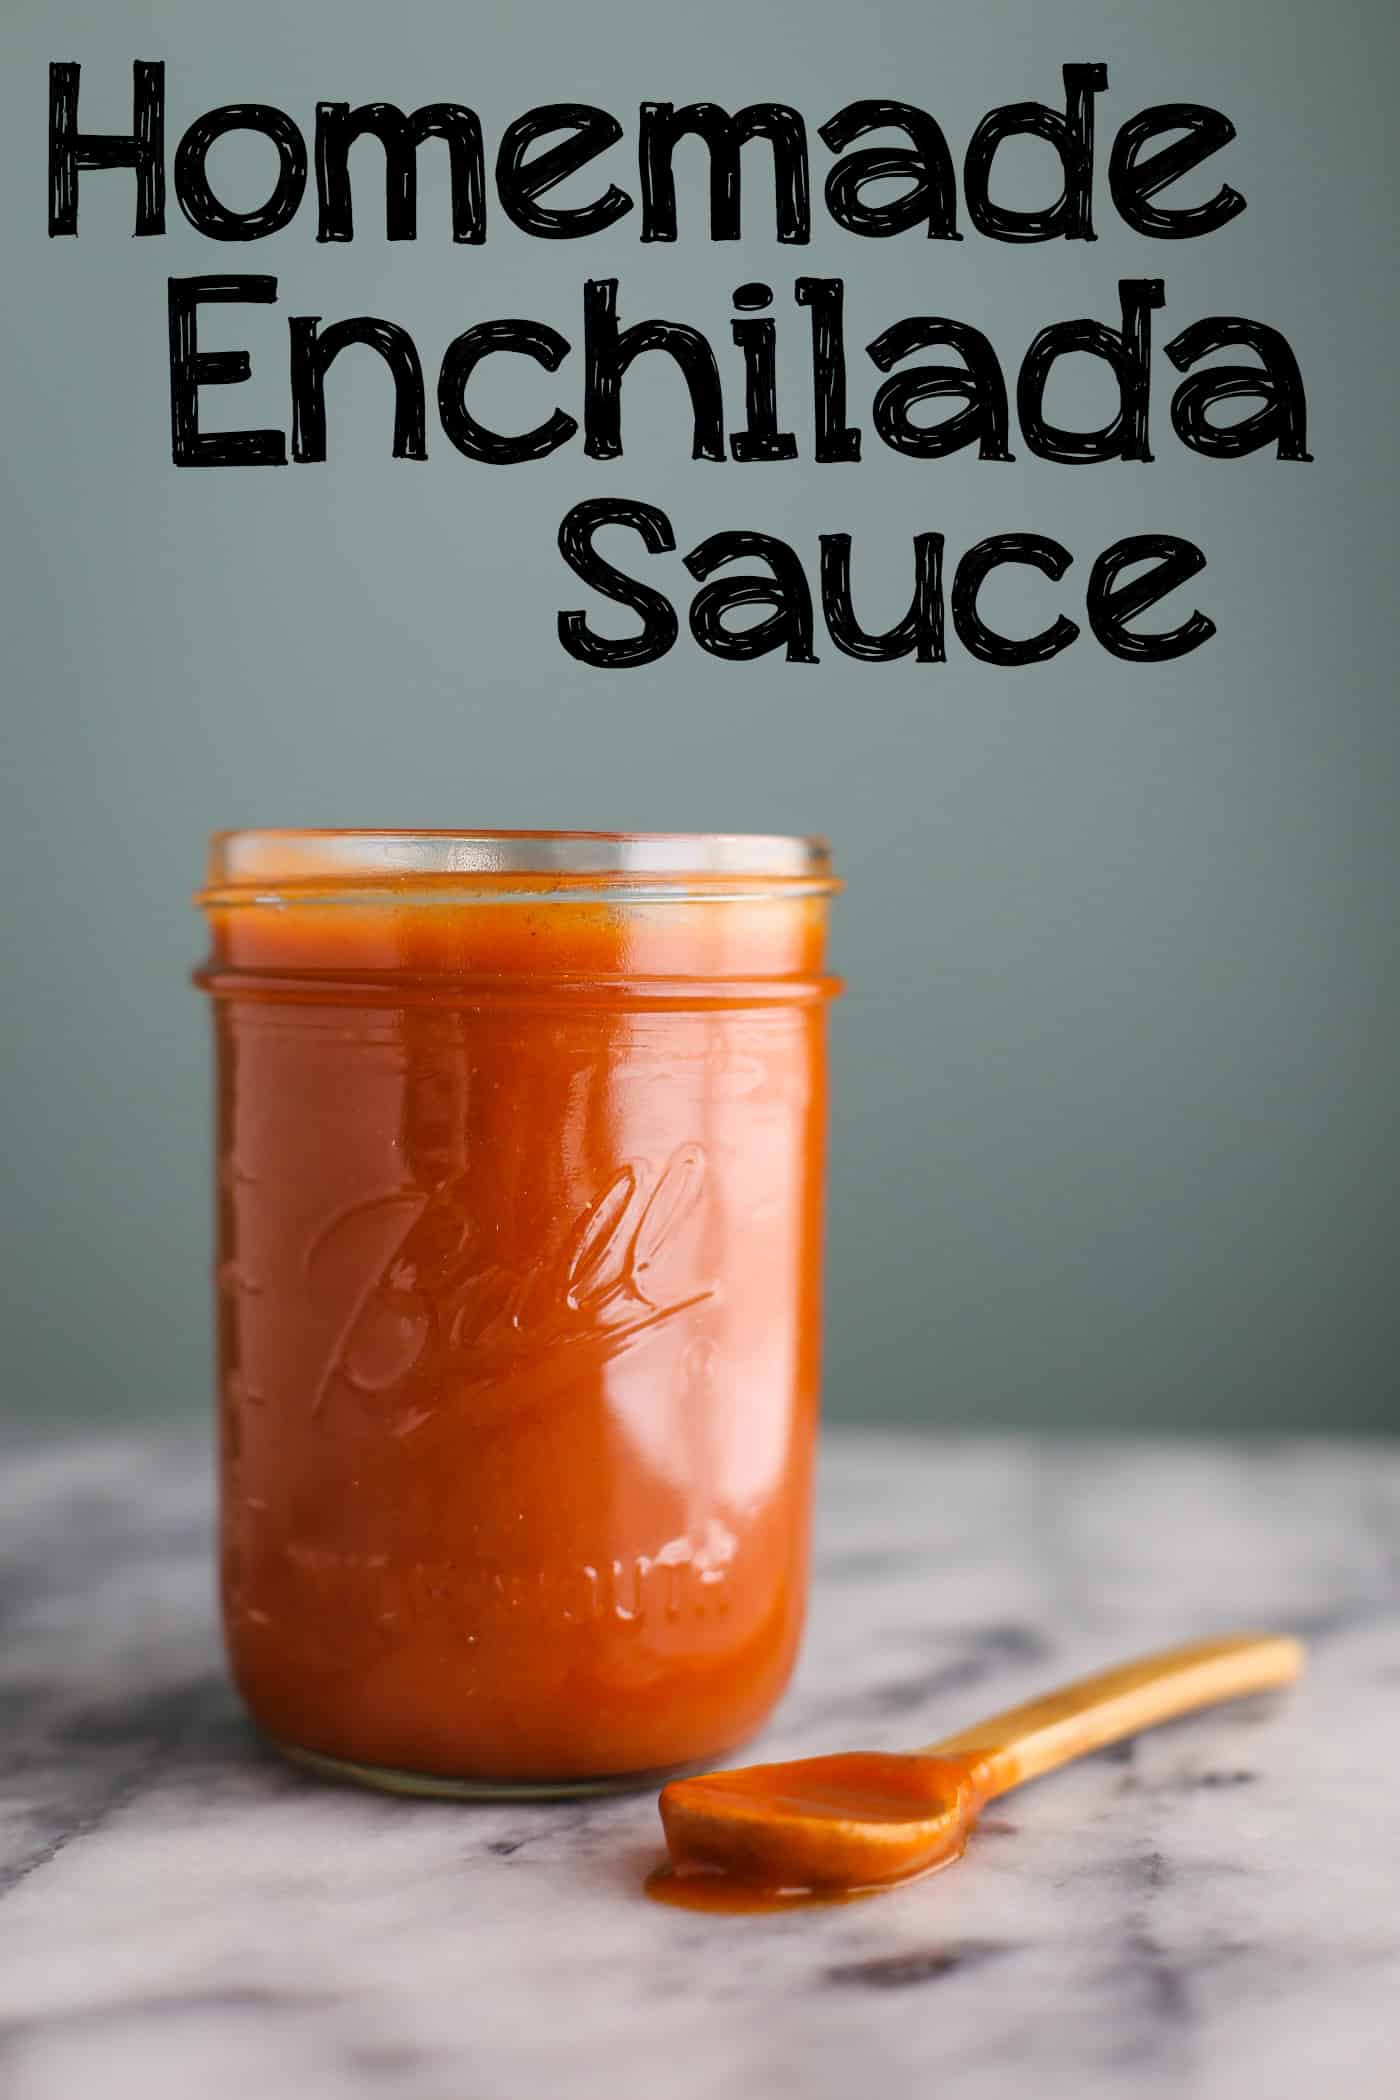 Homemade Enchilada Sauce words